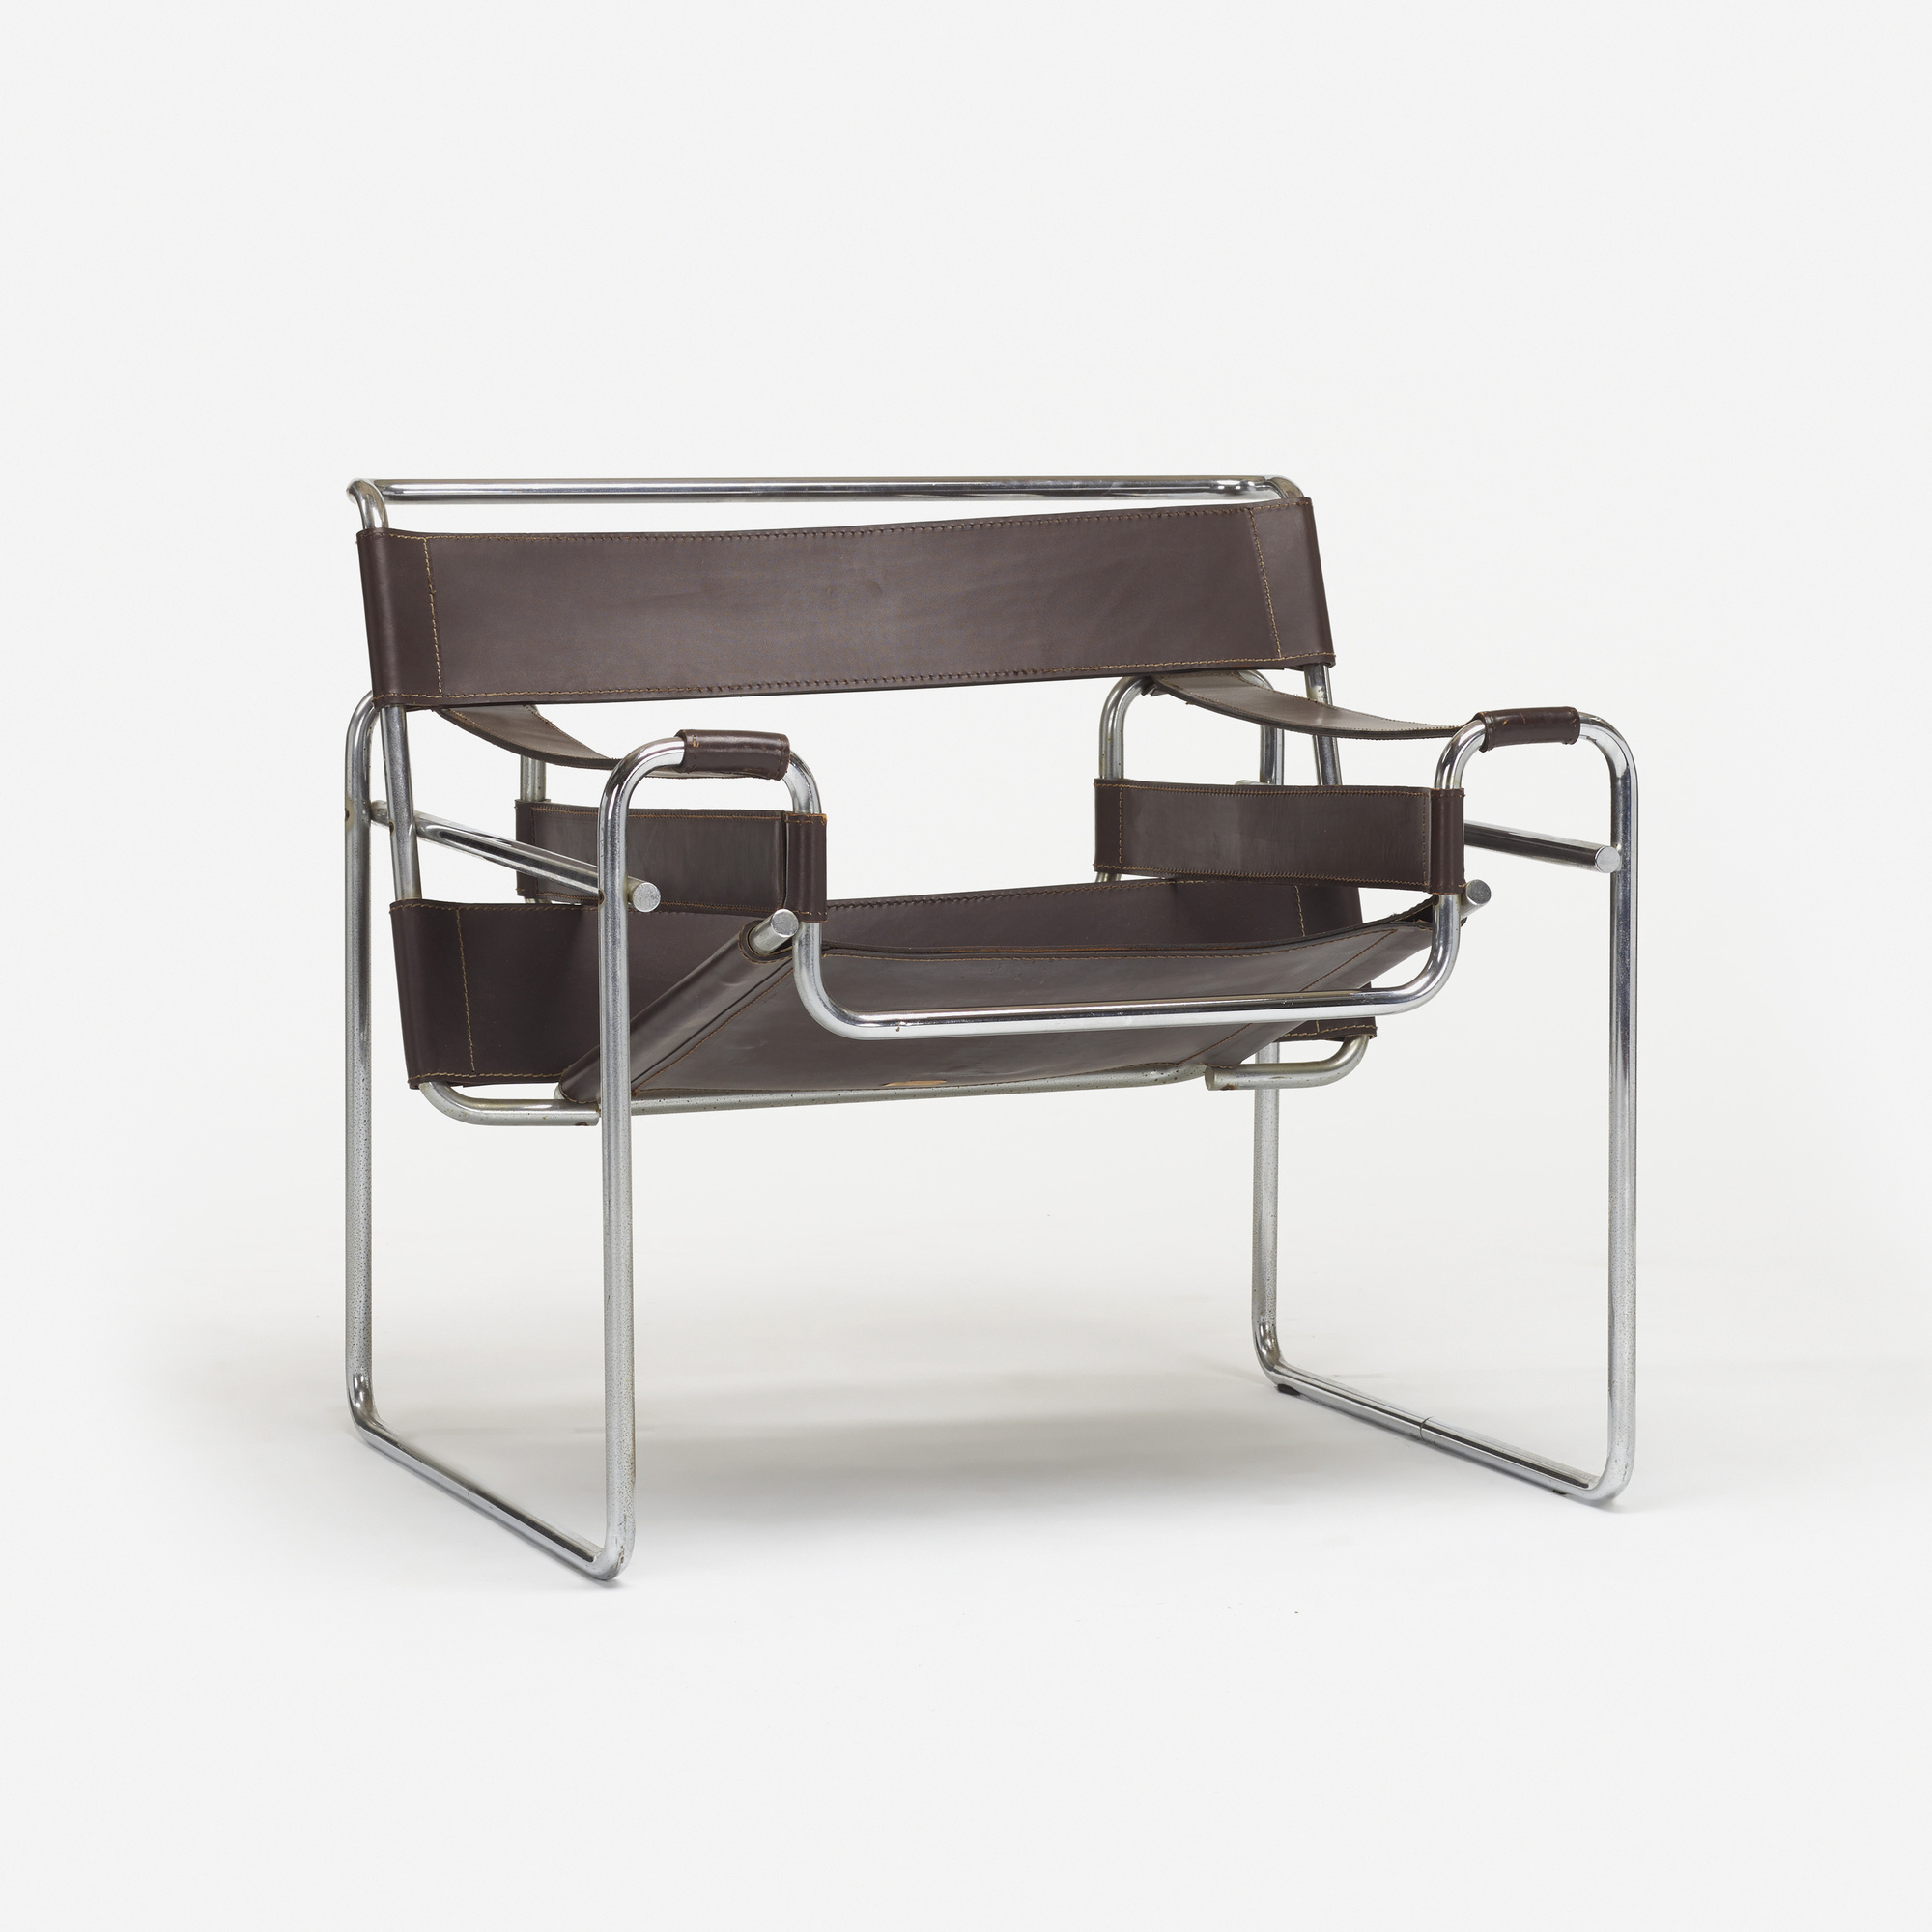 183: Marcel Breuer / Wassily chair (1 of 2)